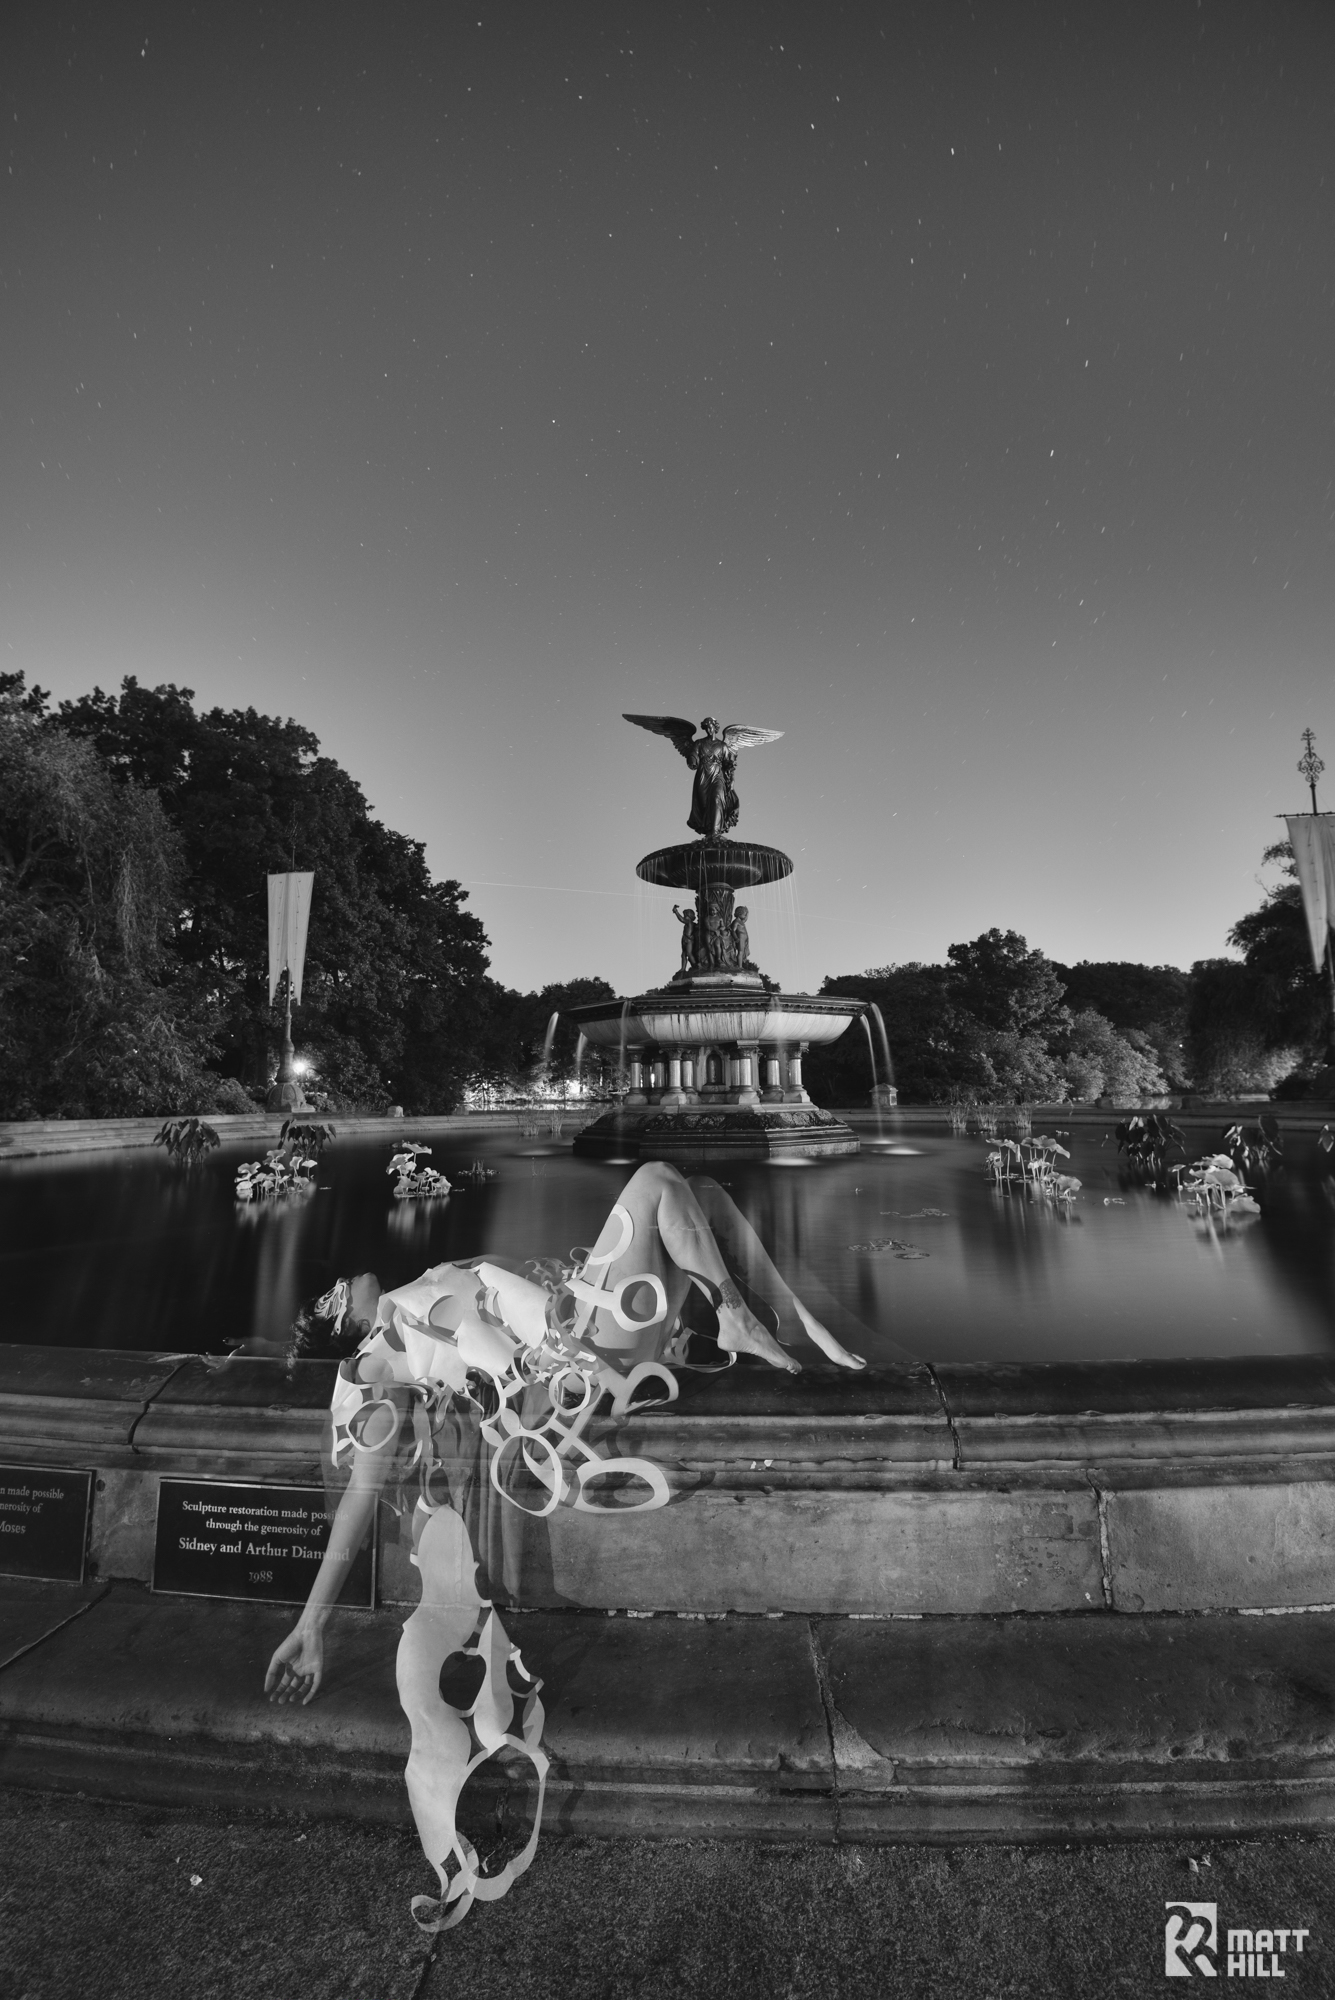 Iris Explosion at Bethesda Fountain, Central Park NYC